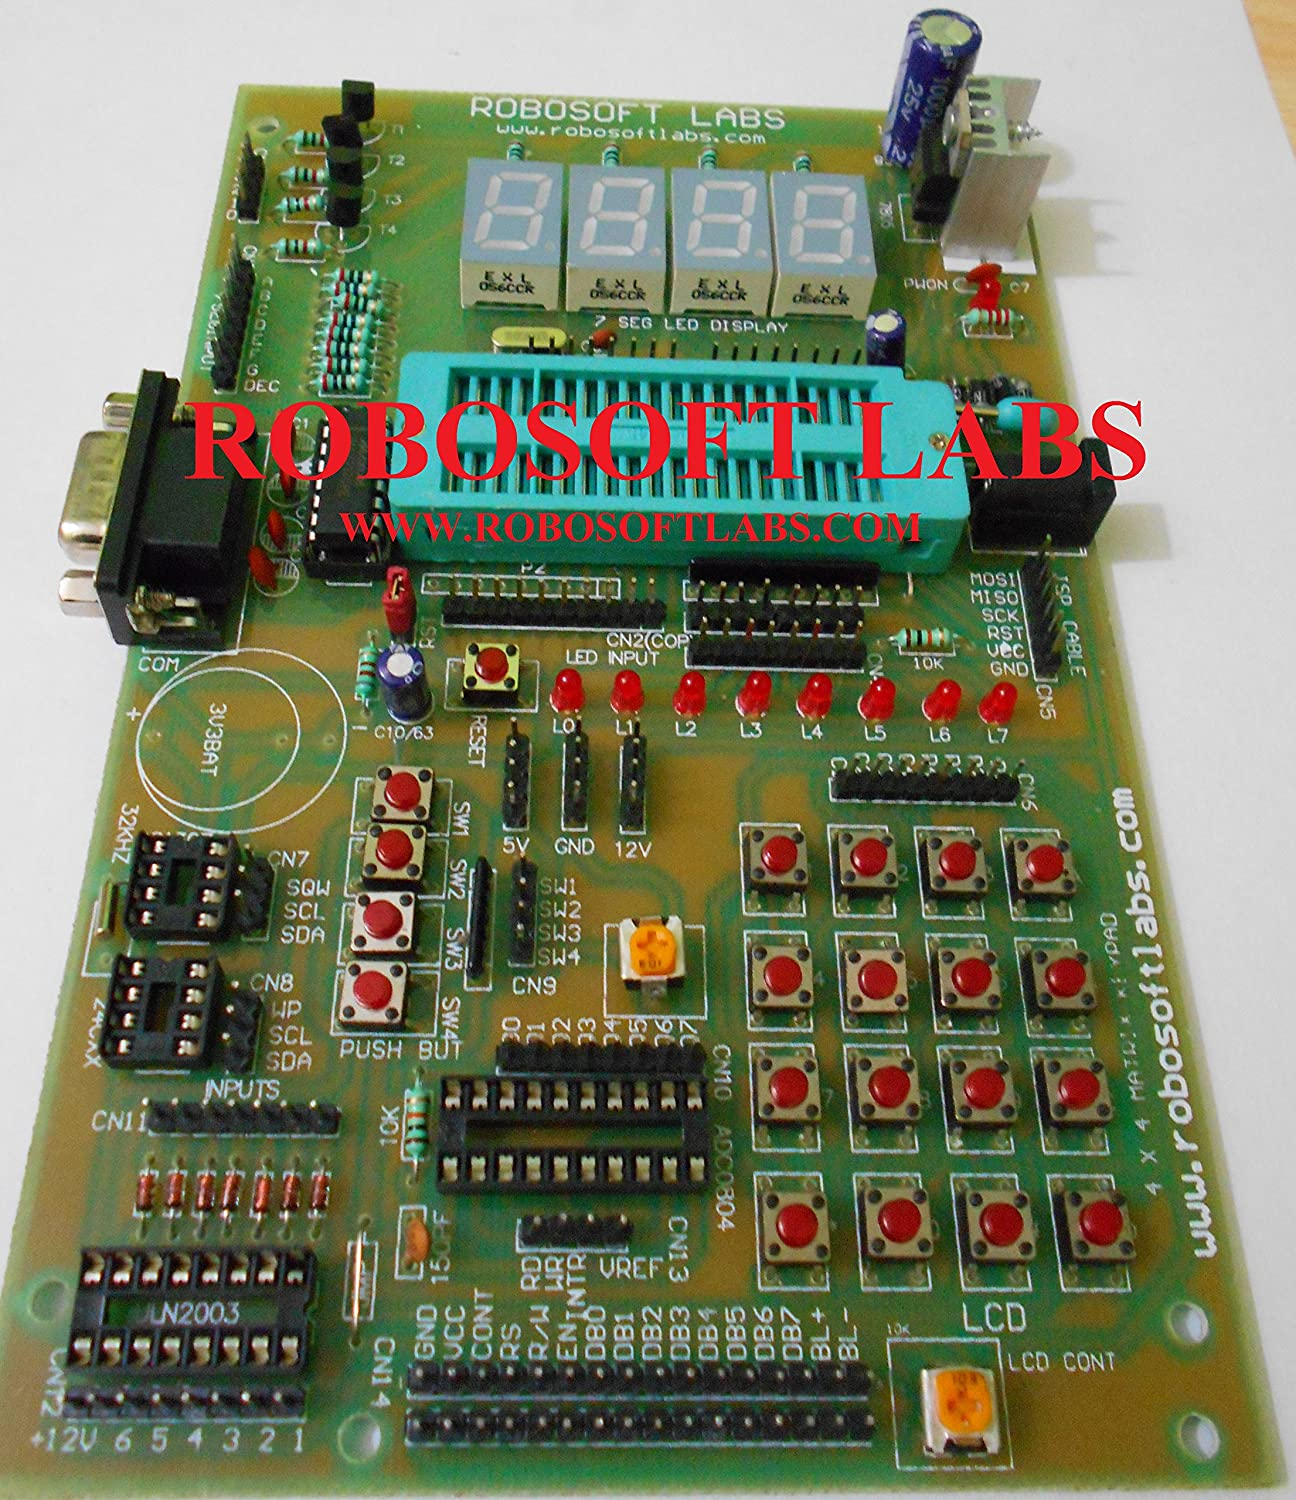 Buy Robosoft Labs 8051 8052 40 Pin Microcontroller Development Isp Pc Software For Programming This At89s51 52 Can Be Board With Rs232 Online At Low Prices In India